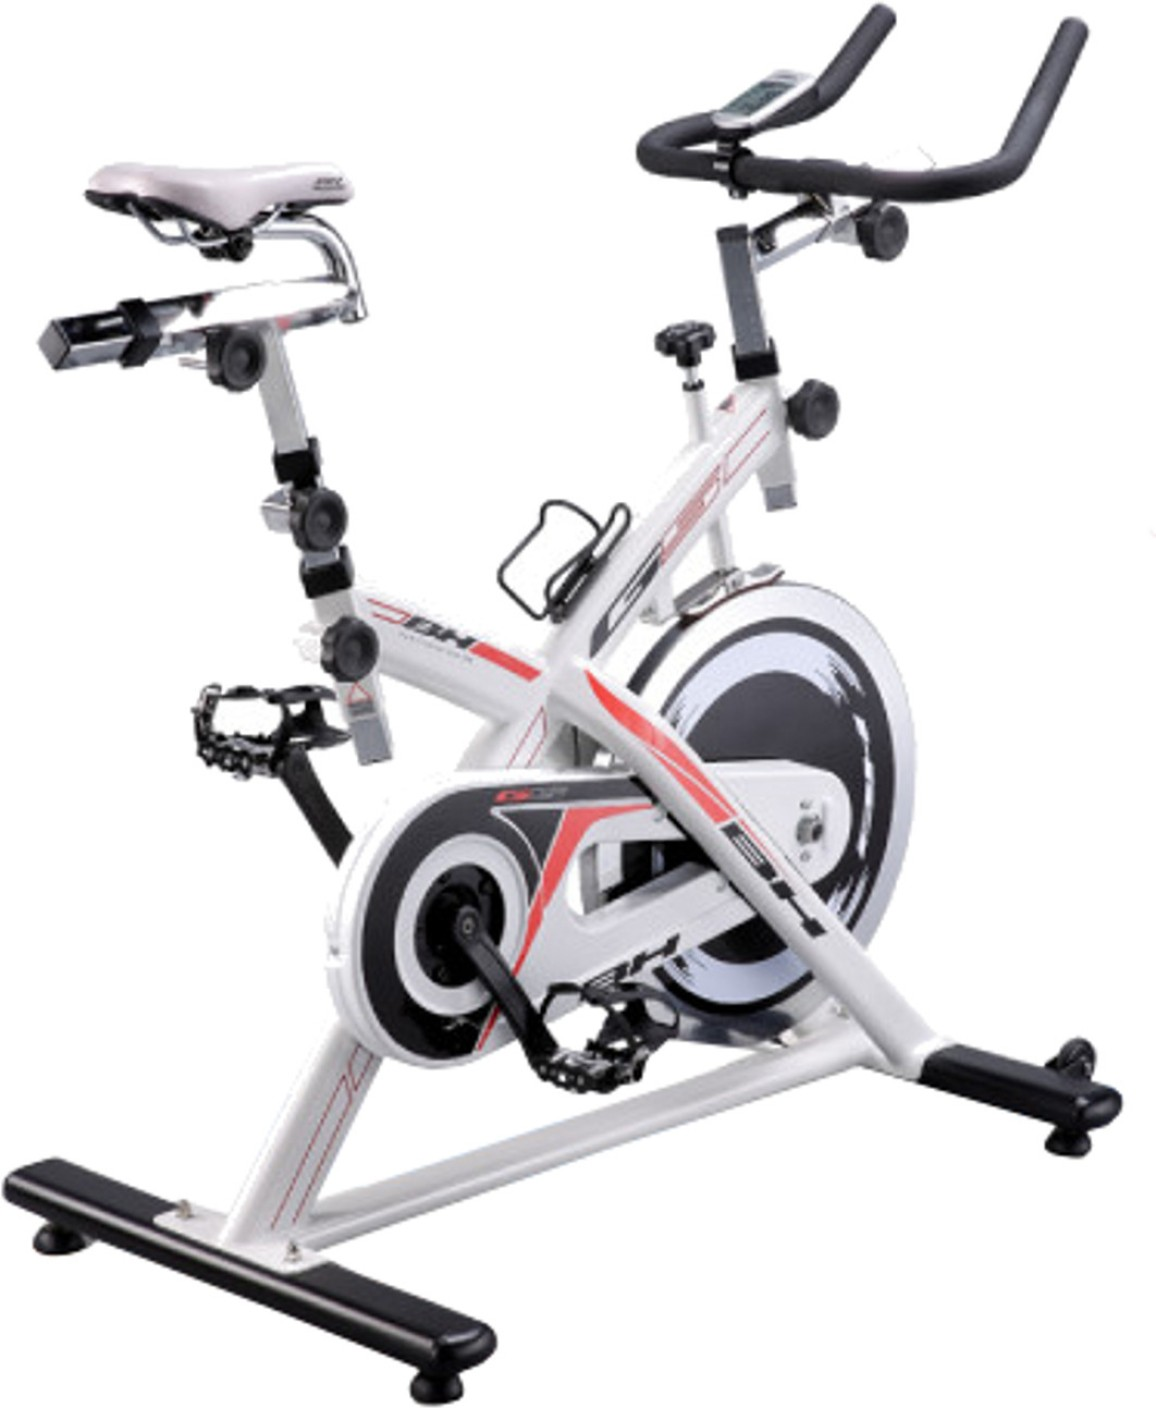 bh fitness spin bike spinner exercise bike exercise bike buy bh fitness spin bike spinner. Black Bedroom Furniture Sets. Home Design Ideas